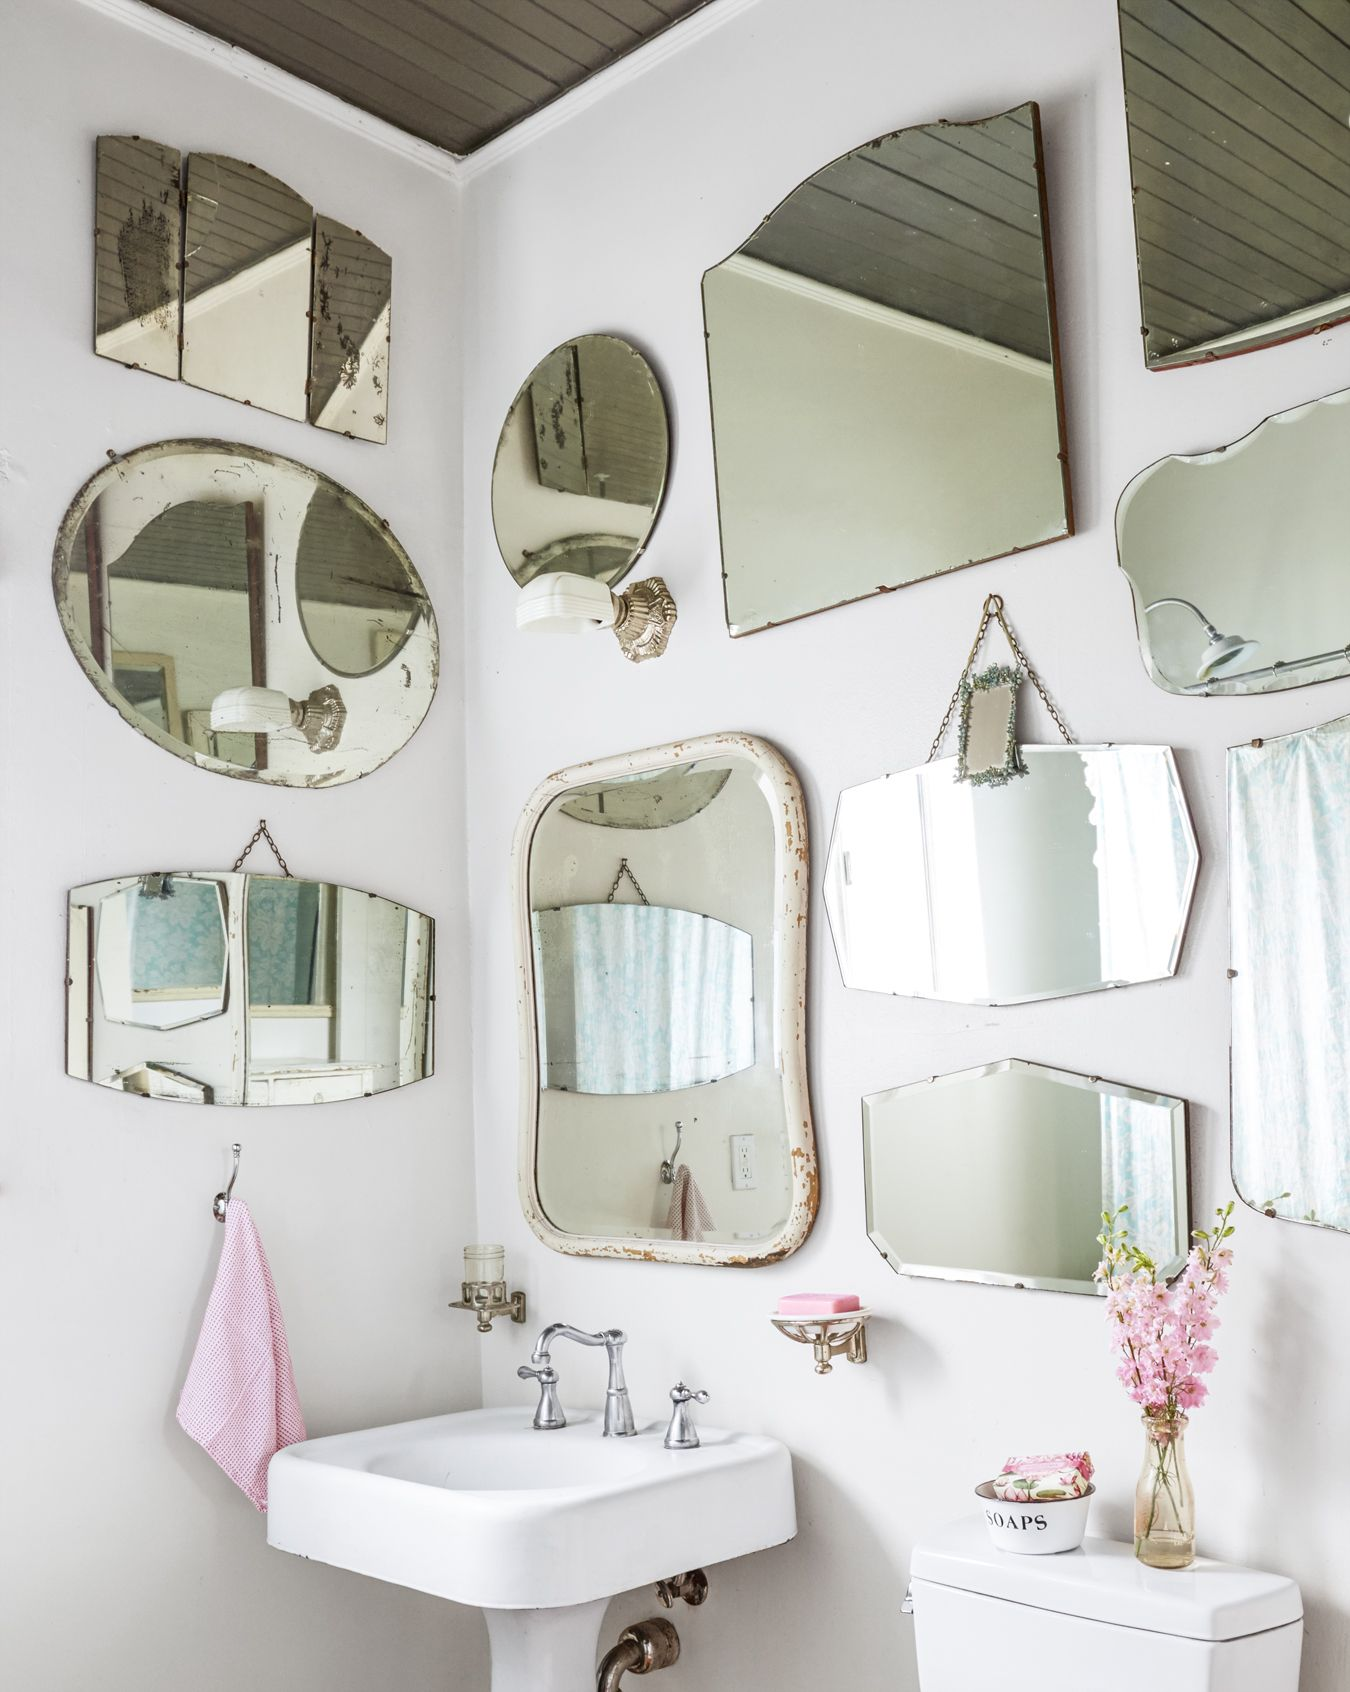 16 Vintage Decorating Ideas From Inside A 19th Century California Farmhouse Mirror Gallery Vintage Mirror Wall Vintage Bathrooms